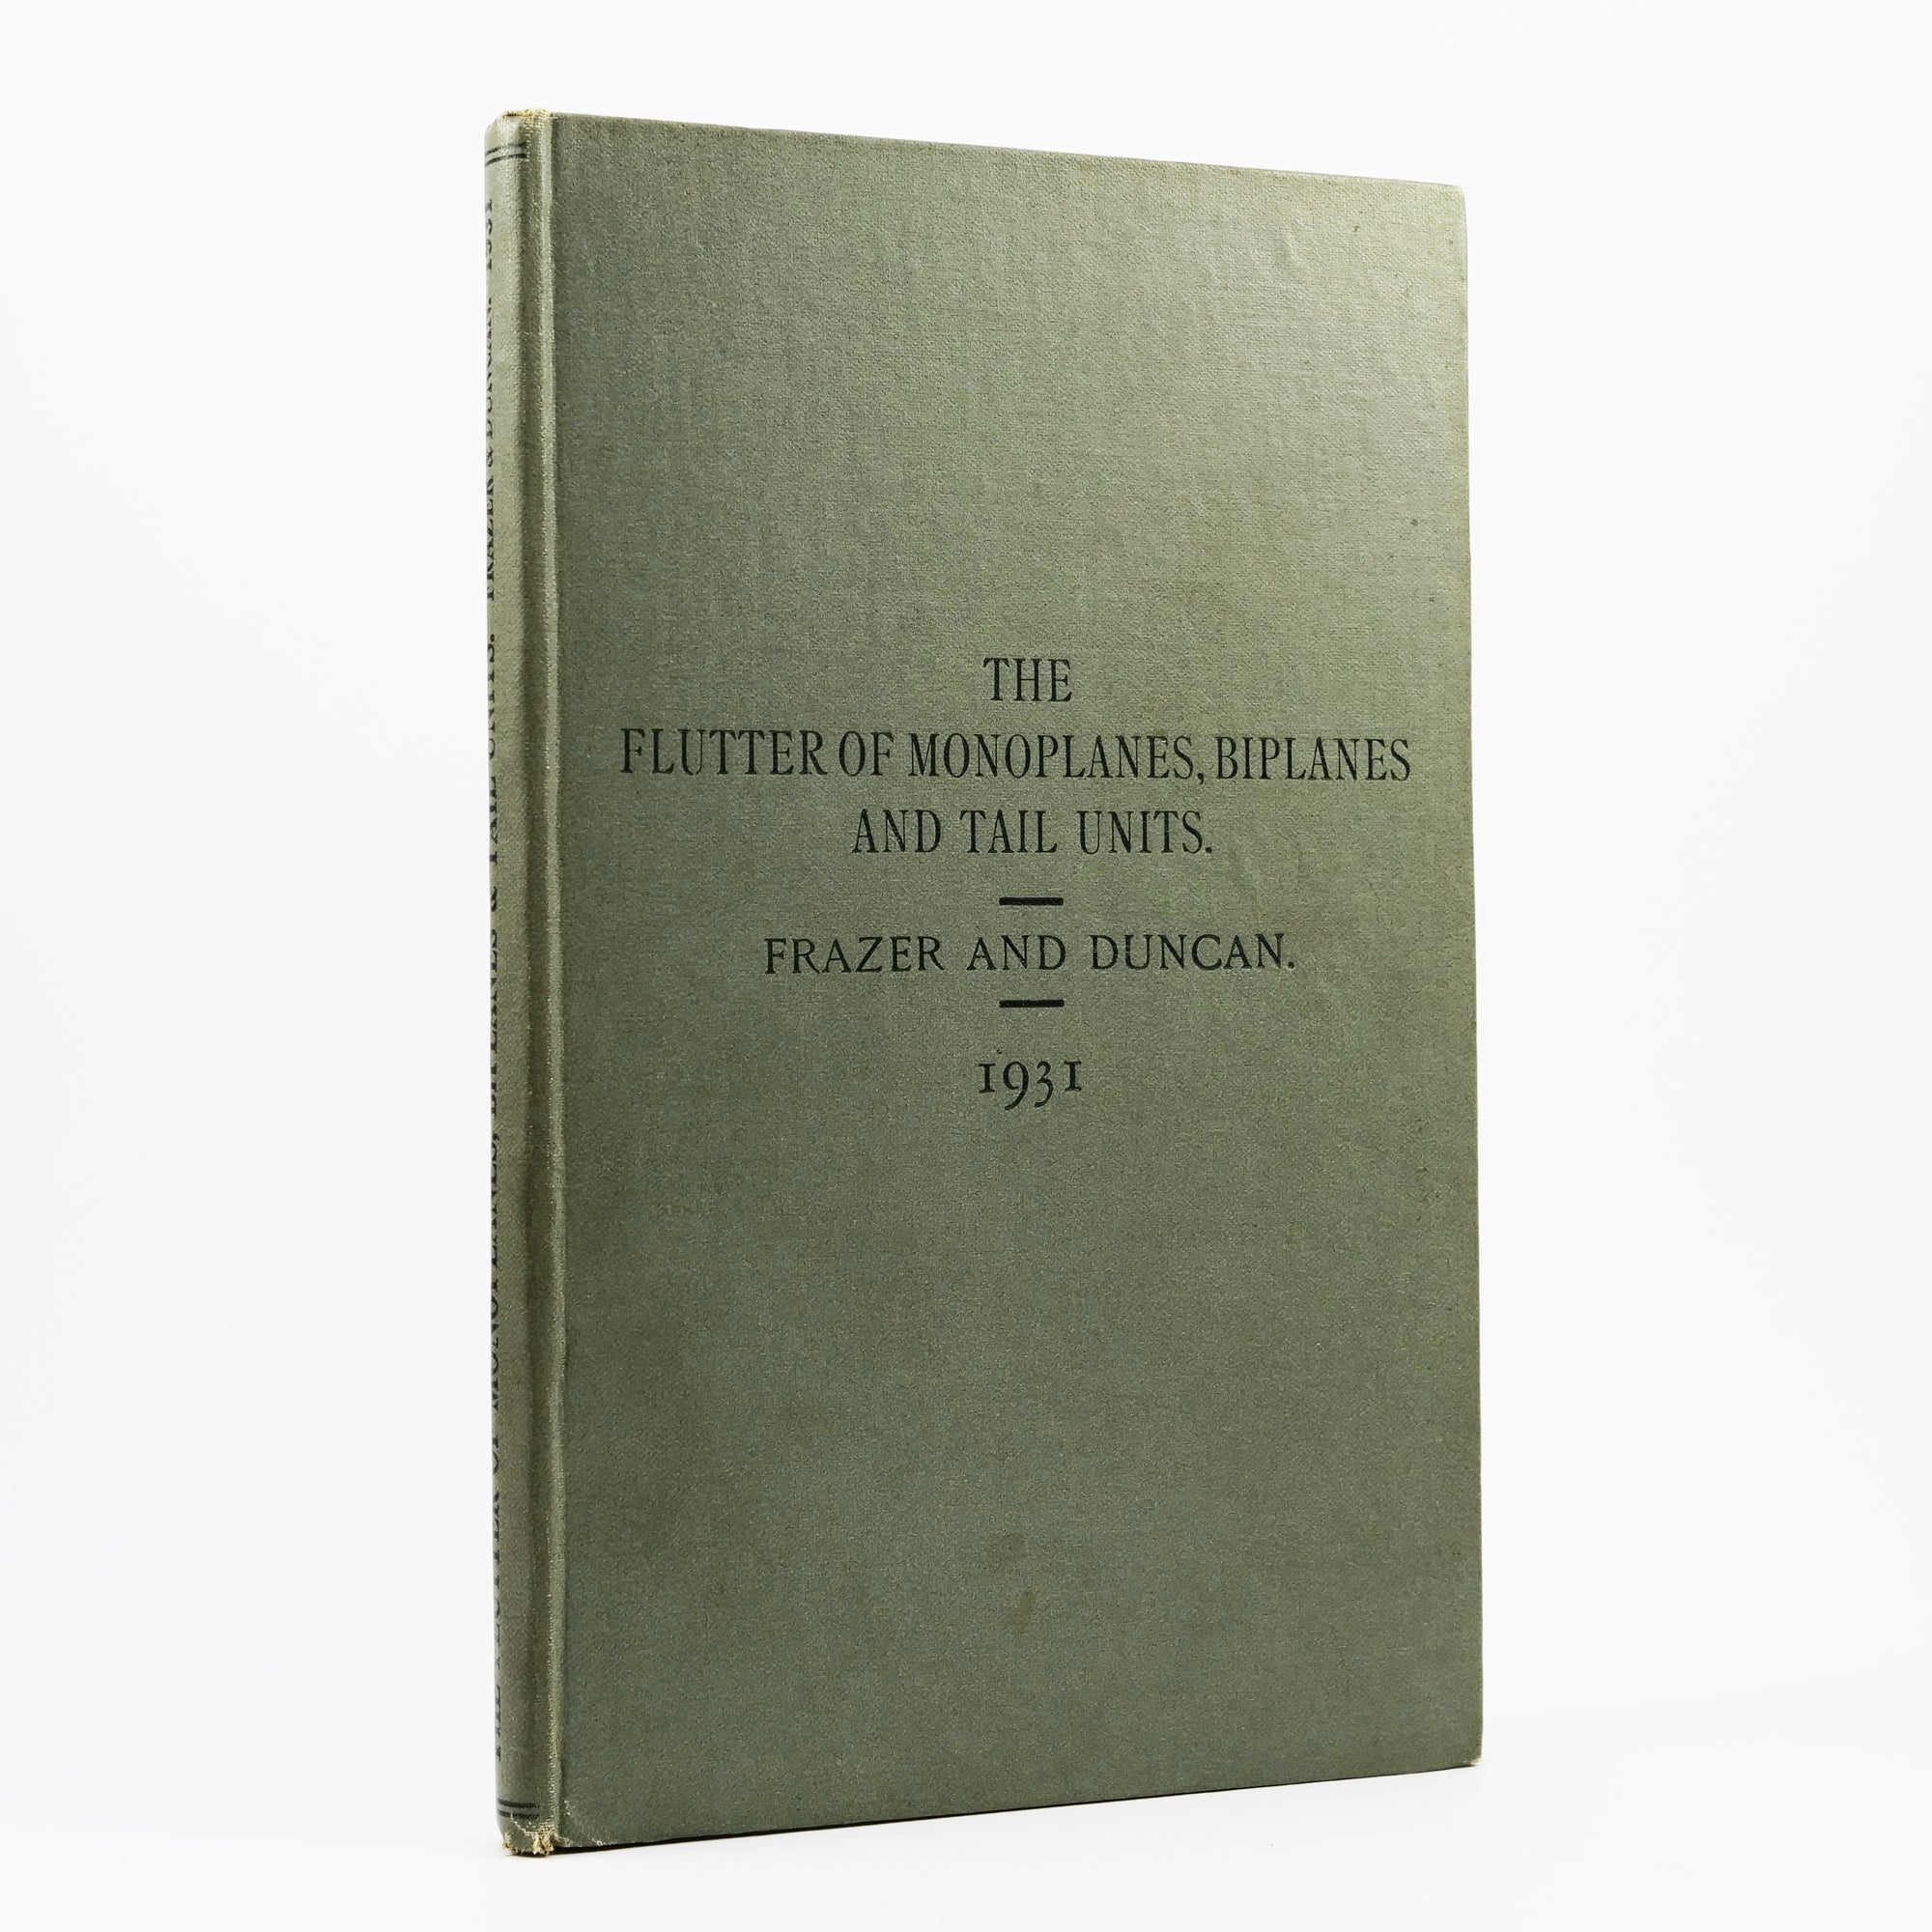 Frazer, R. A. & W. J. Duncan | The Flutter of Monoplanes, Biplanes and Tail Units